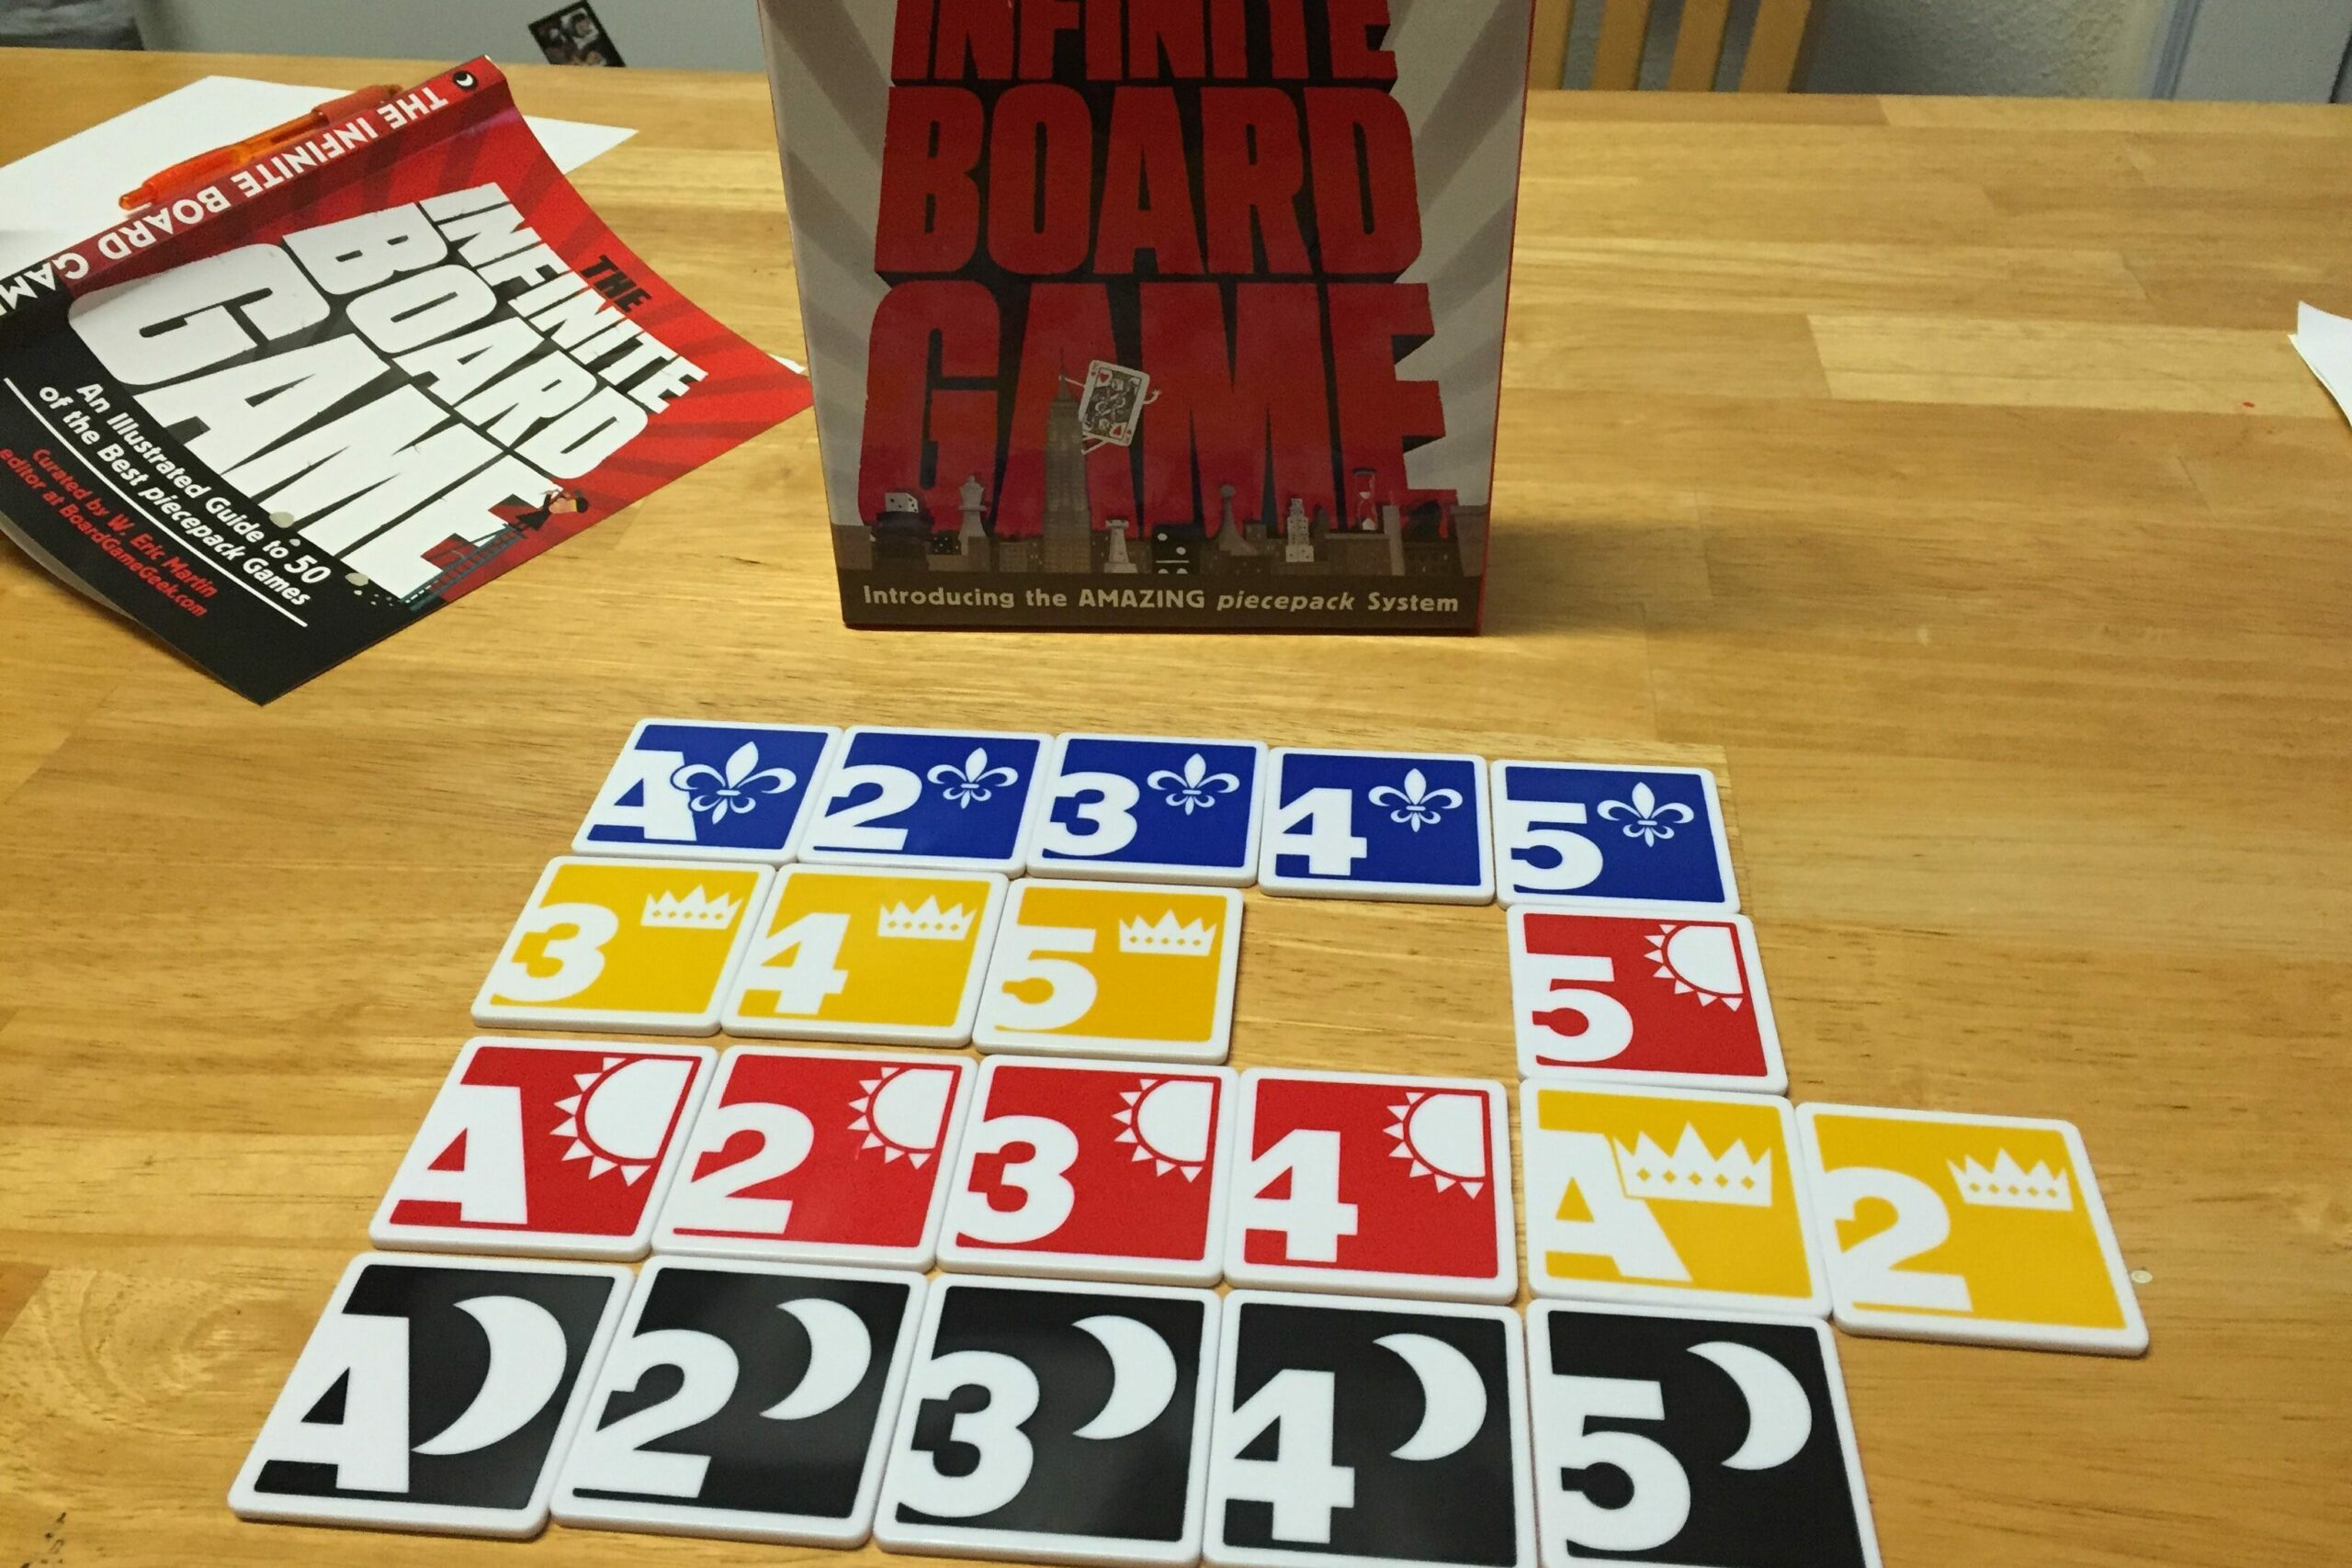 Several tiles from the Infinite Board Game: square white plastic tiles with rounded corners and a bold design.